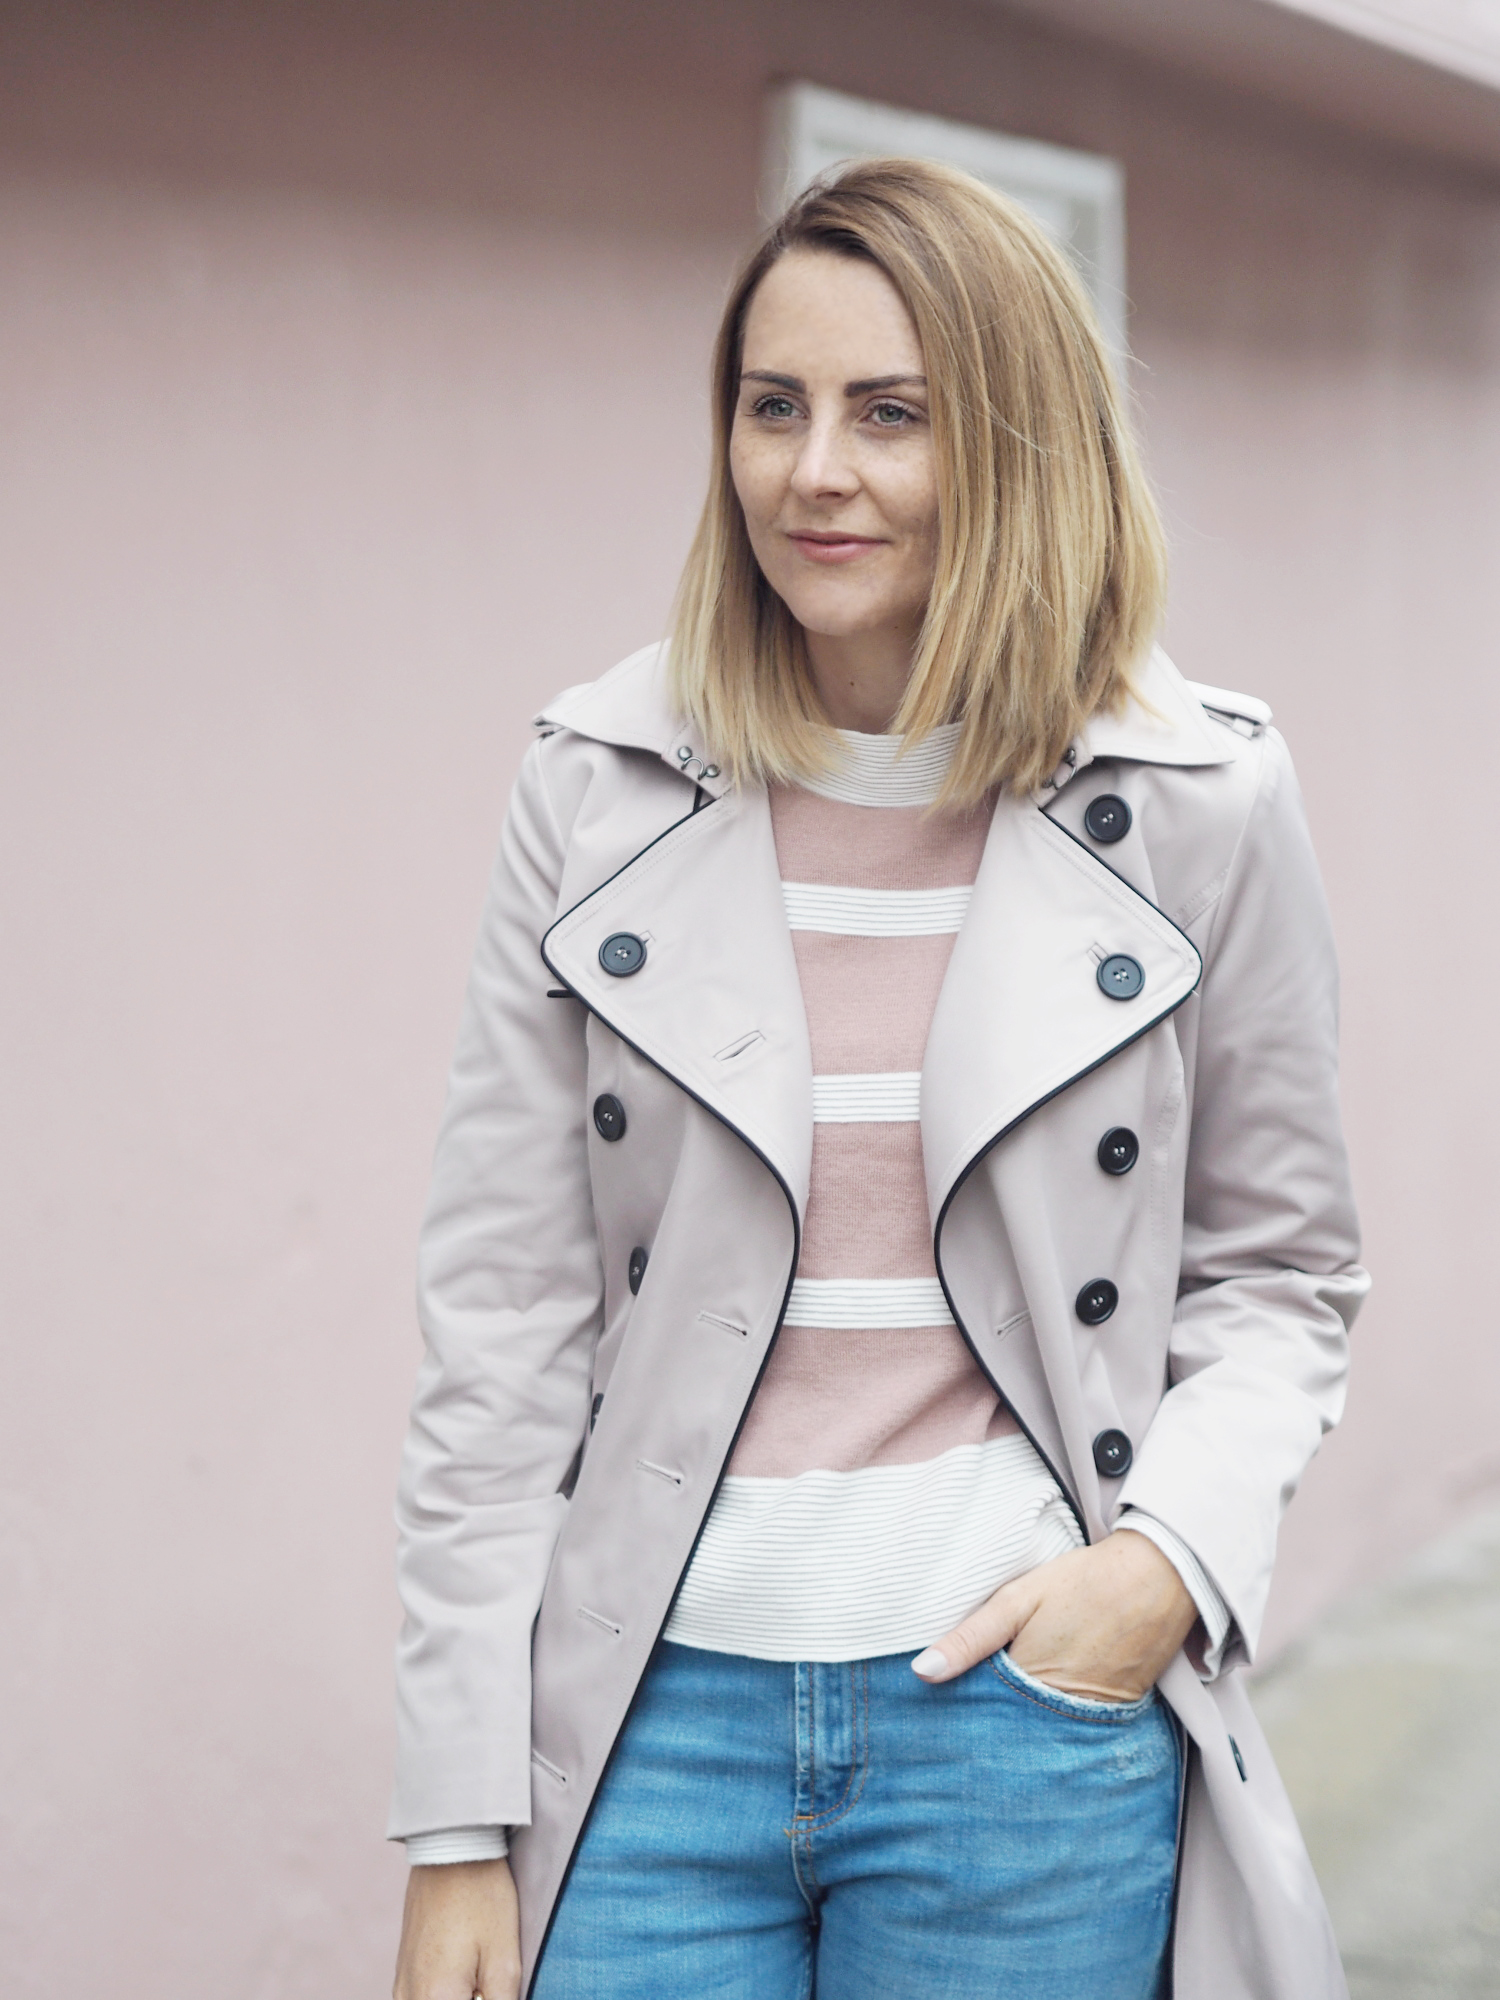 pinki jumper and jeans casual outfit